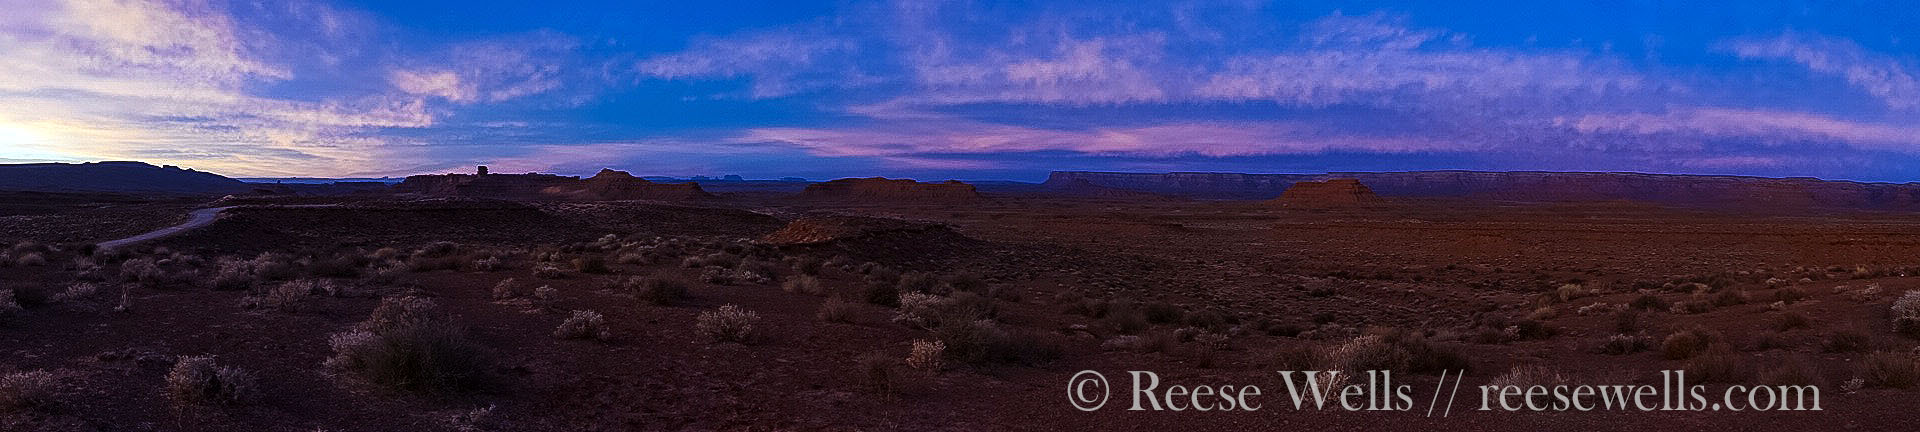 Panorama sunrise at Valley of the Gods.